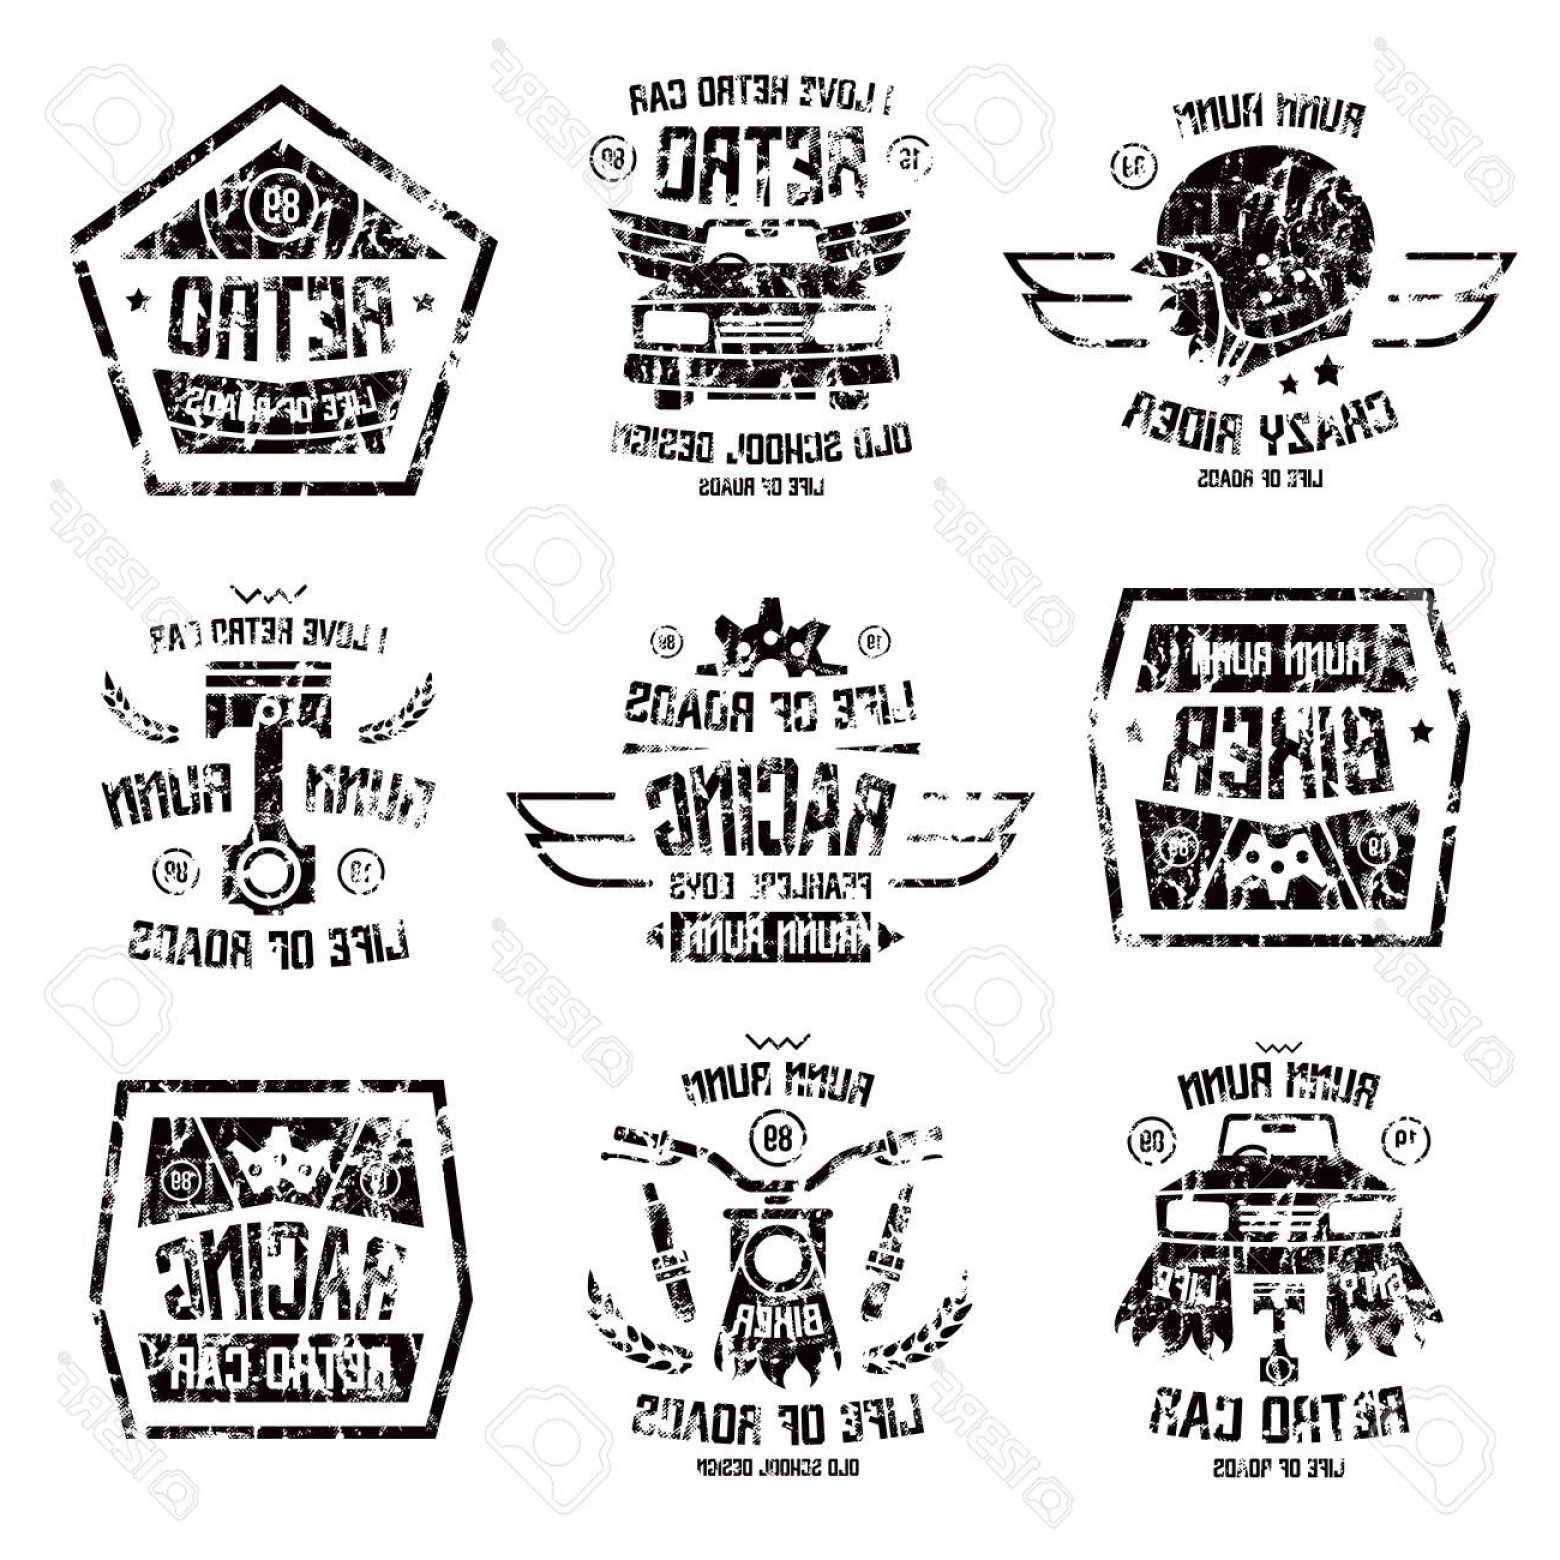 Black And White Vector Racing Graphics: Photostock Vector Racing Badges In Retro Style With Shabby Texture Graphic Design For T Shirt Black Print On White Bac